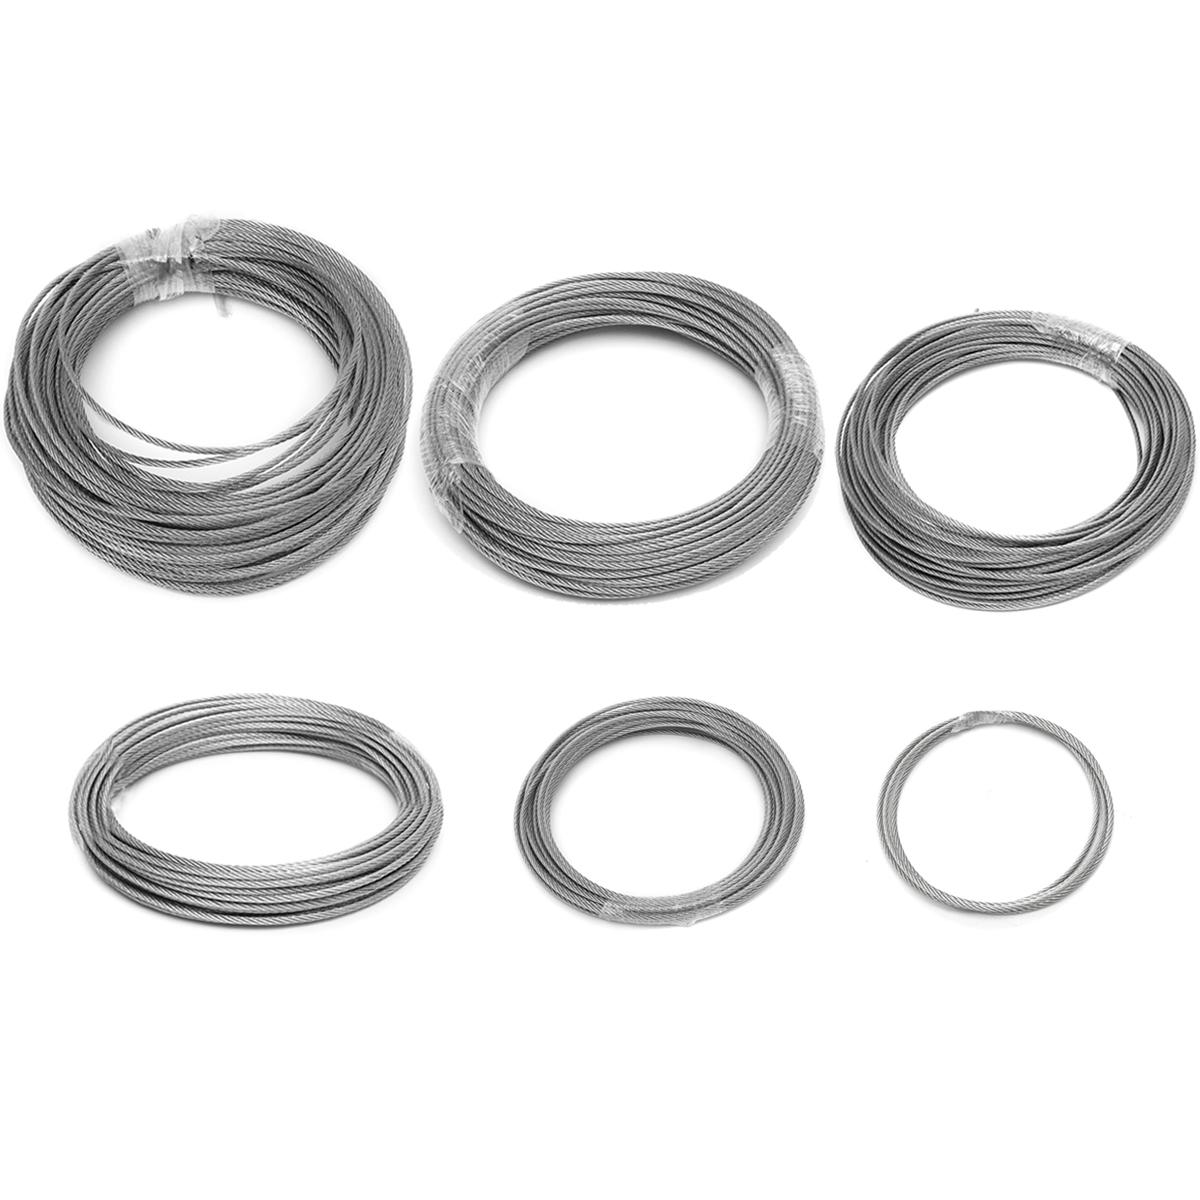 Stainless Steel Wire Rope Tensile Diameter 3mm Structure Cable Fishing Lifting Cable Clothesline 1M/ 5M/ 10M/15M/ 20M/25M